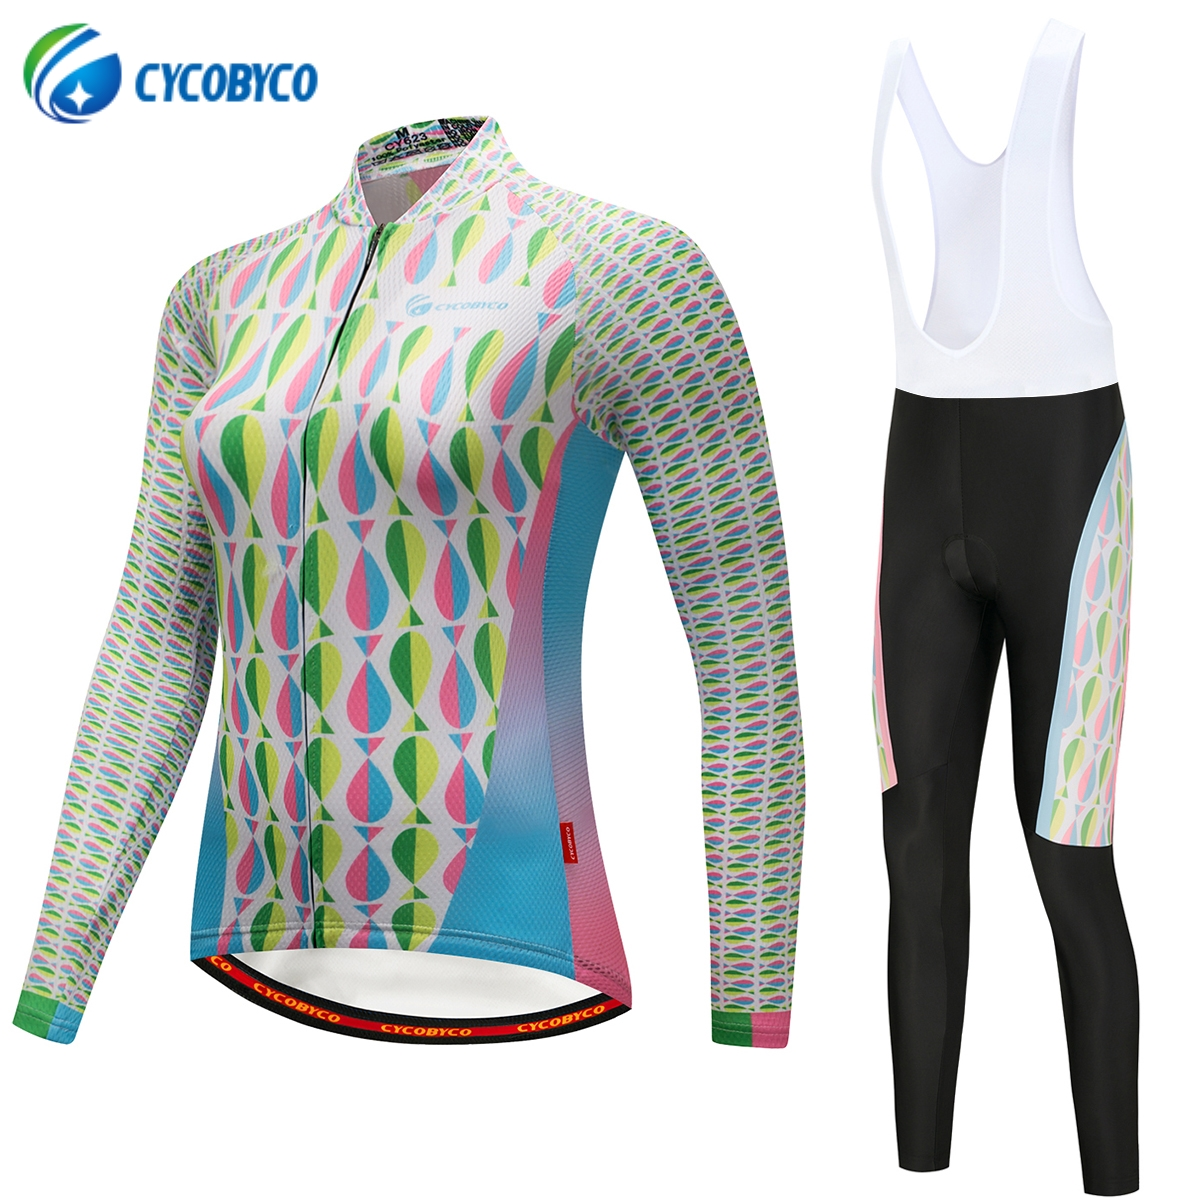 Cycobyco Autumn Mermaid Women Cycling Jersey Set /Mountian Bike Wear Ropa Ciclismo Cycling Bicycle Long Clothes Cycling Clothing